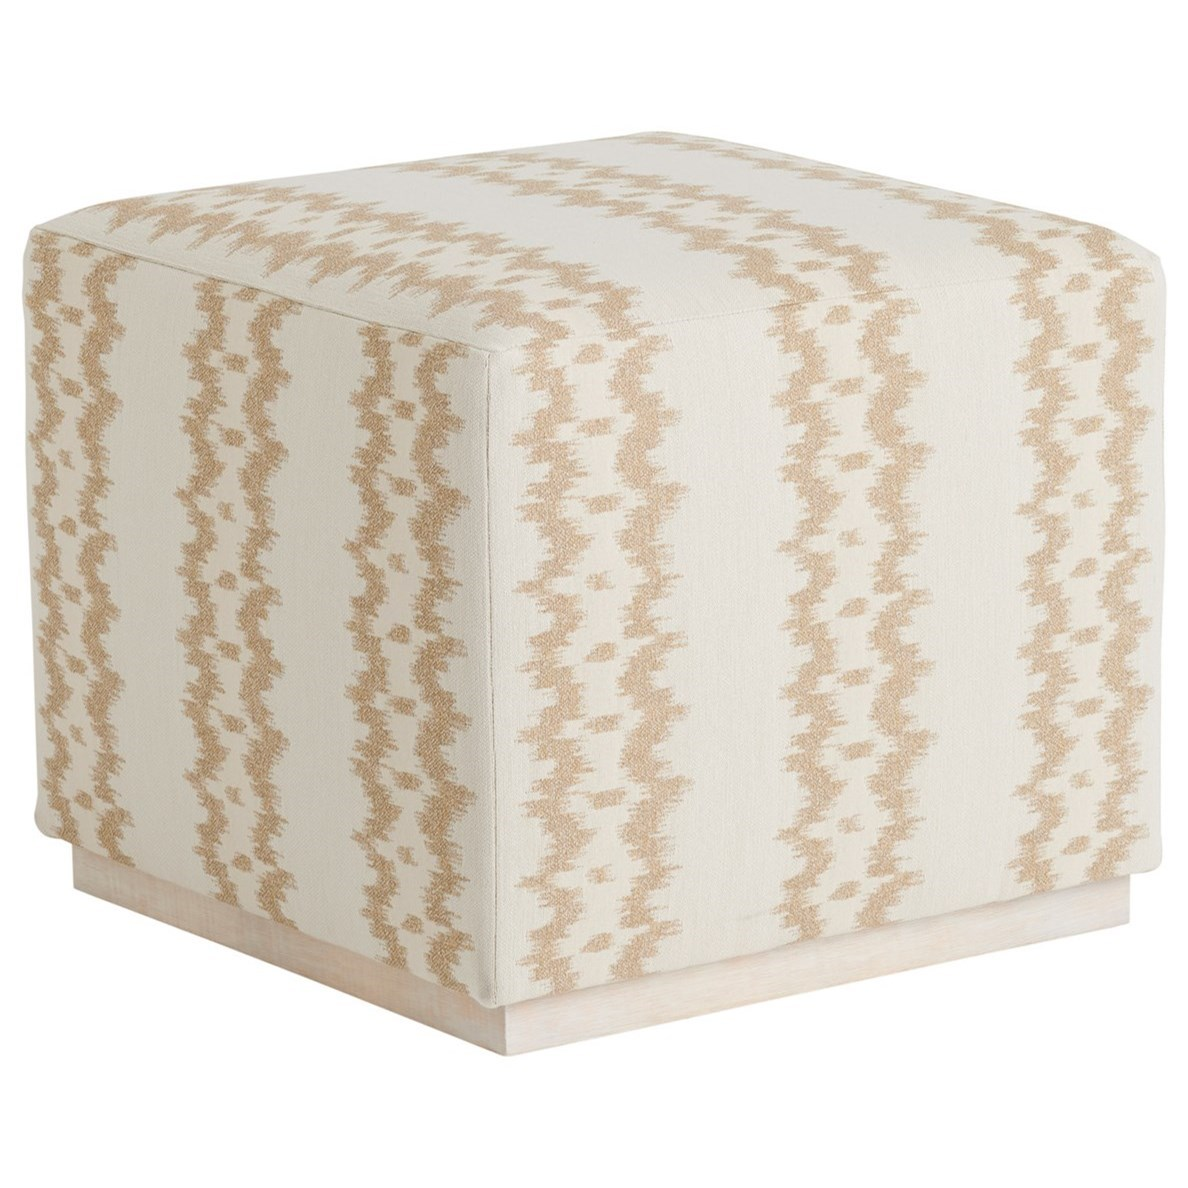 Barclay Butera Upholstery Colby Cube by Barclay Butera at Baer's Furniture